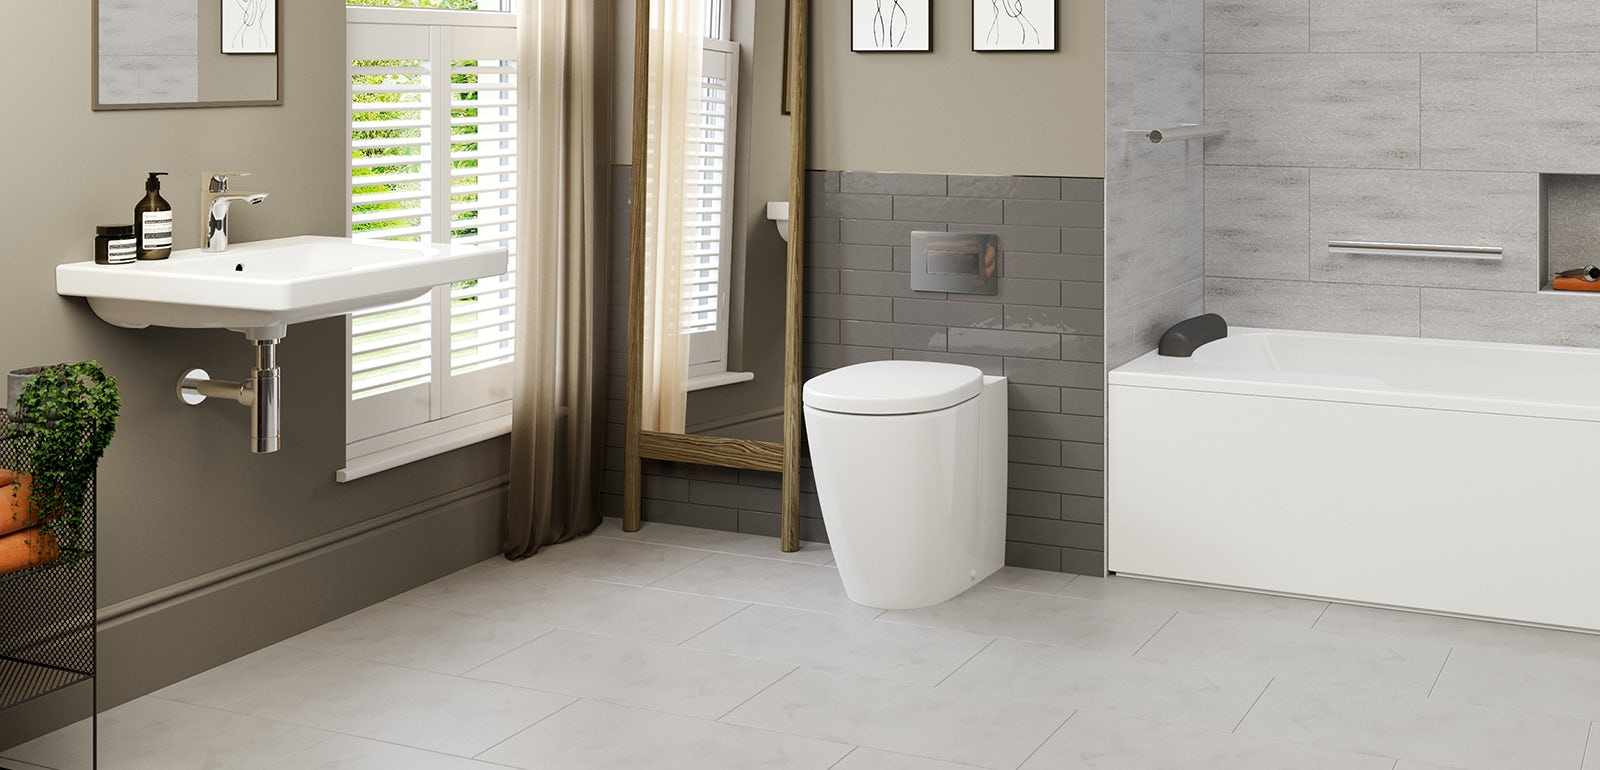 Independent Living: 5 ways to make your bathroom accessible yet stylish with the Ideal Standard Concept Freedom range